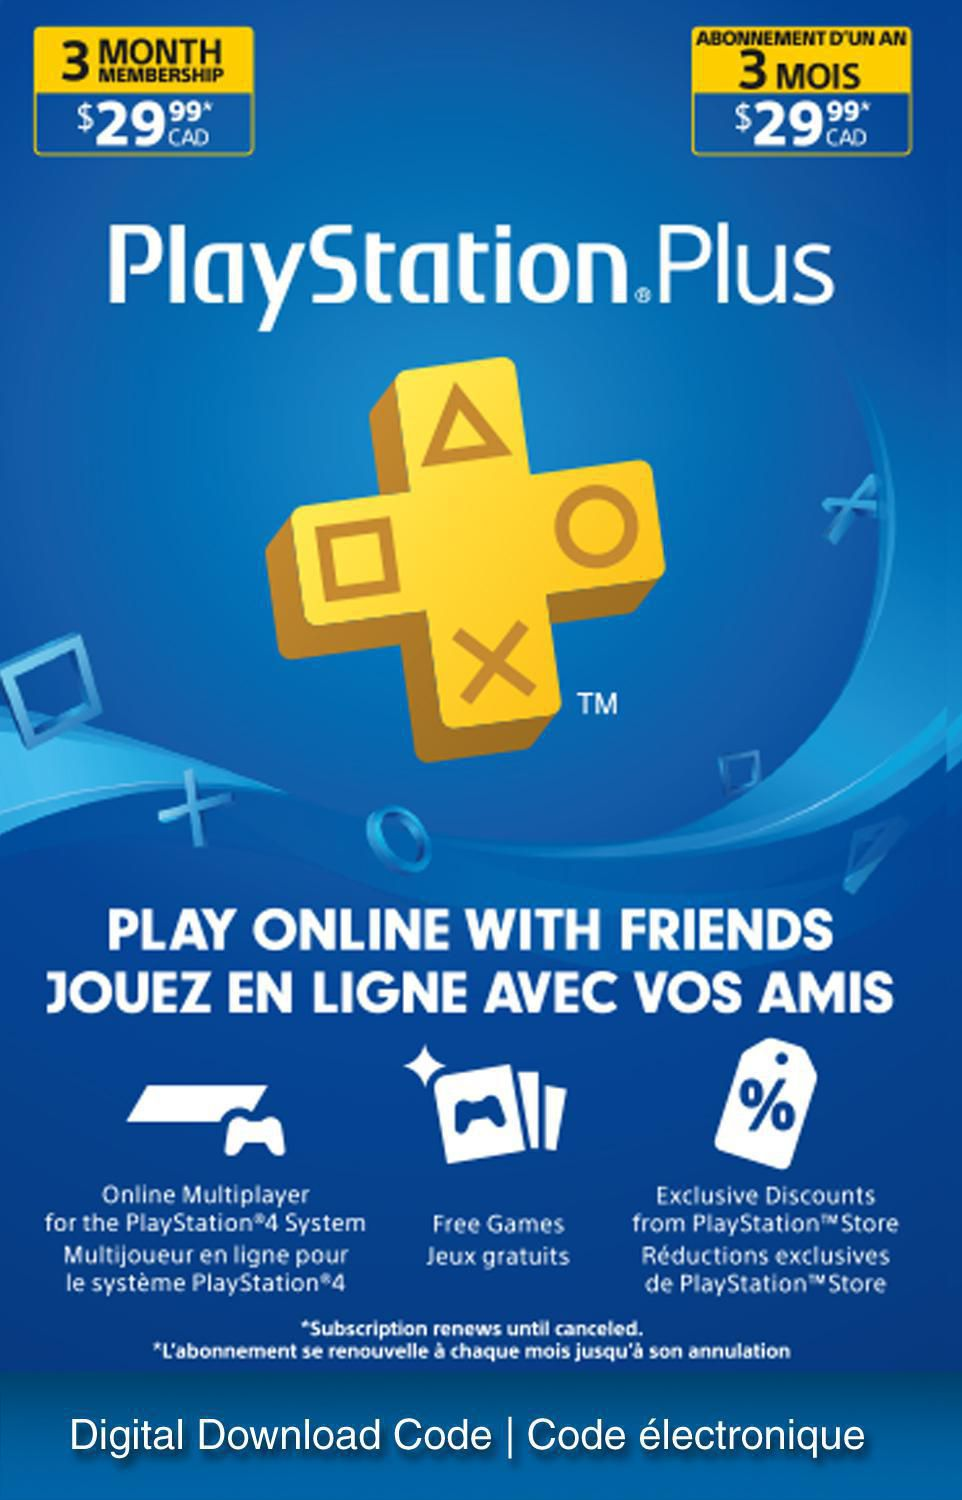 3 Month Playstation Plus Psn Membership Card (New) 3 Month